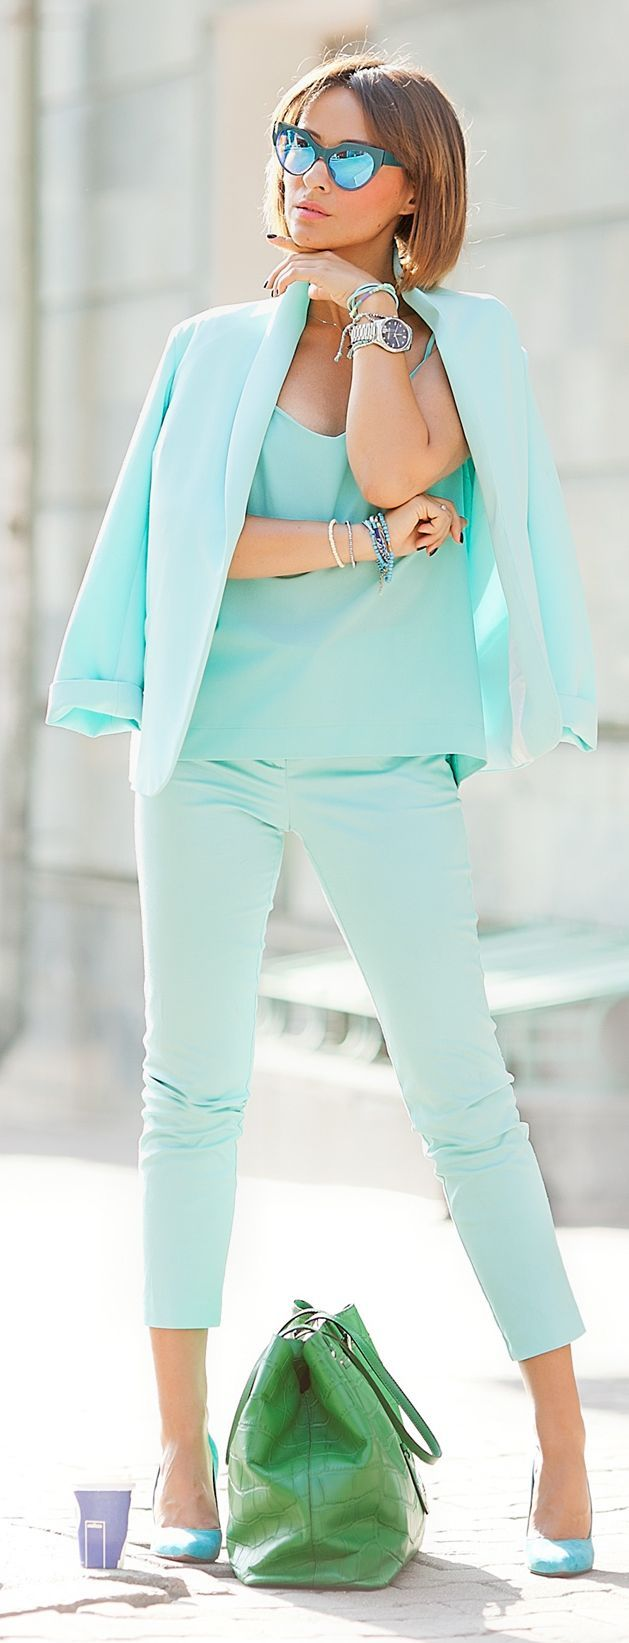 Galant Girl Blue Mint Preppy Outfit